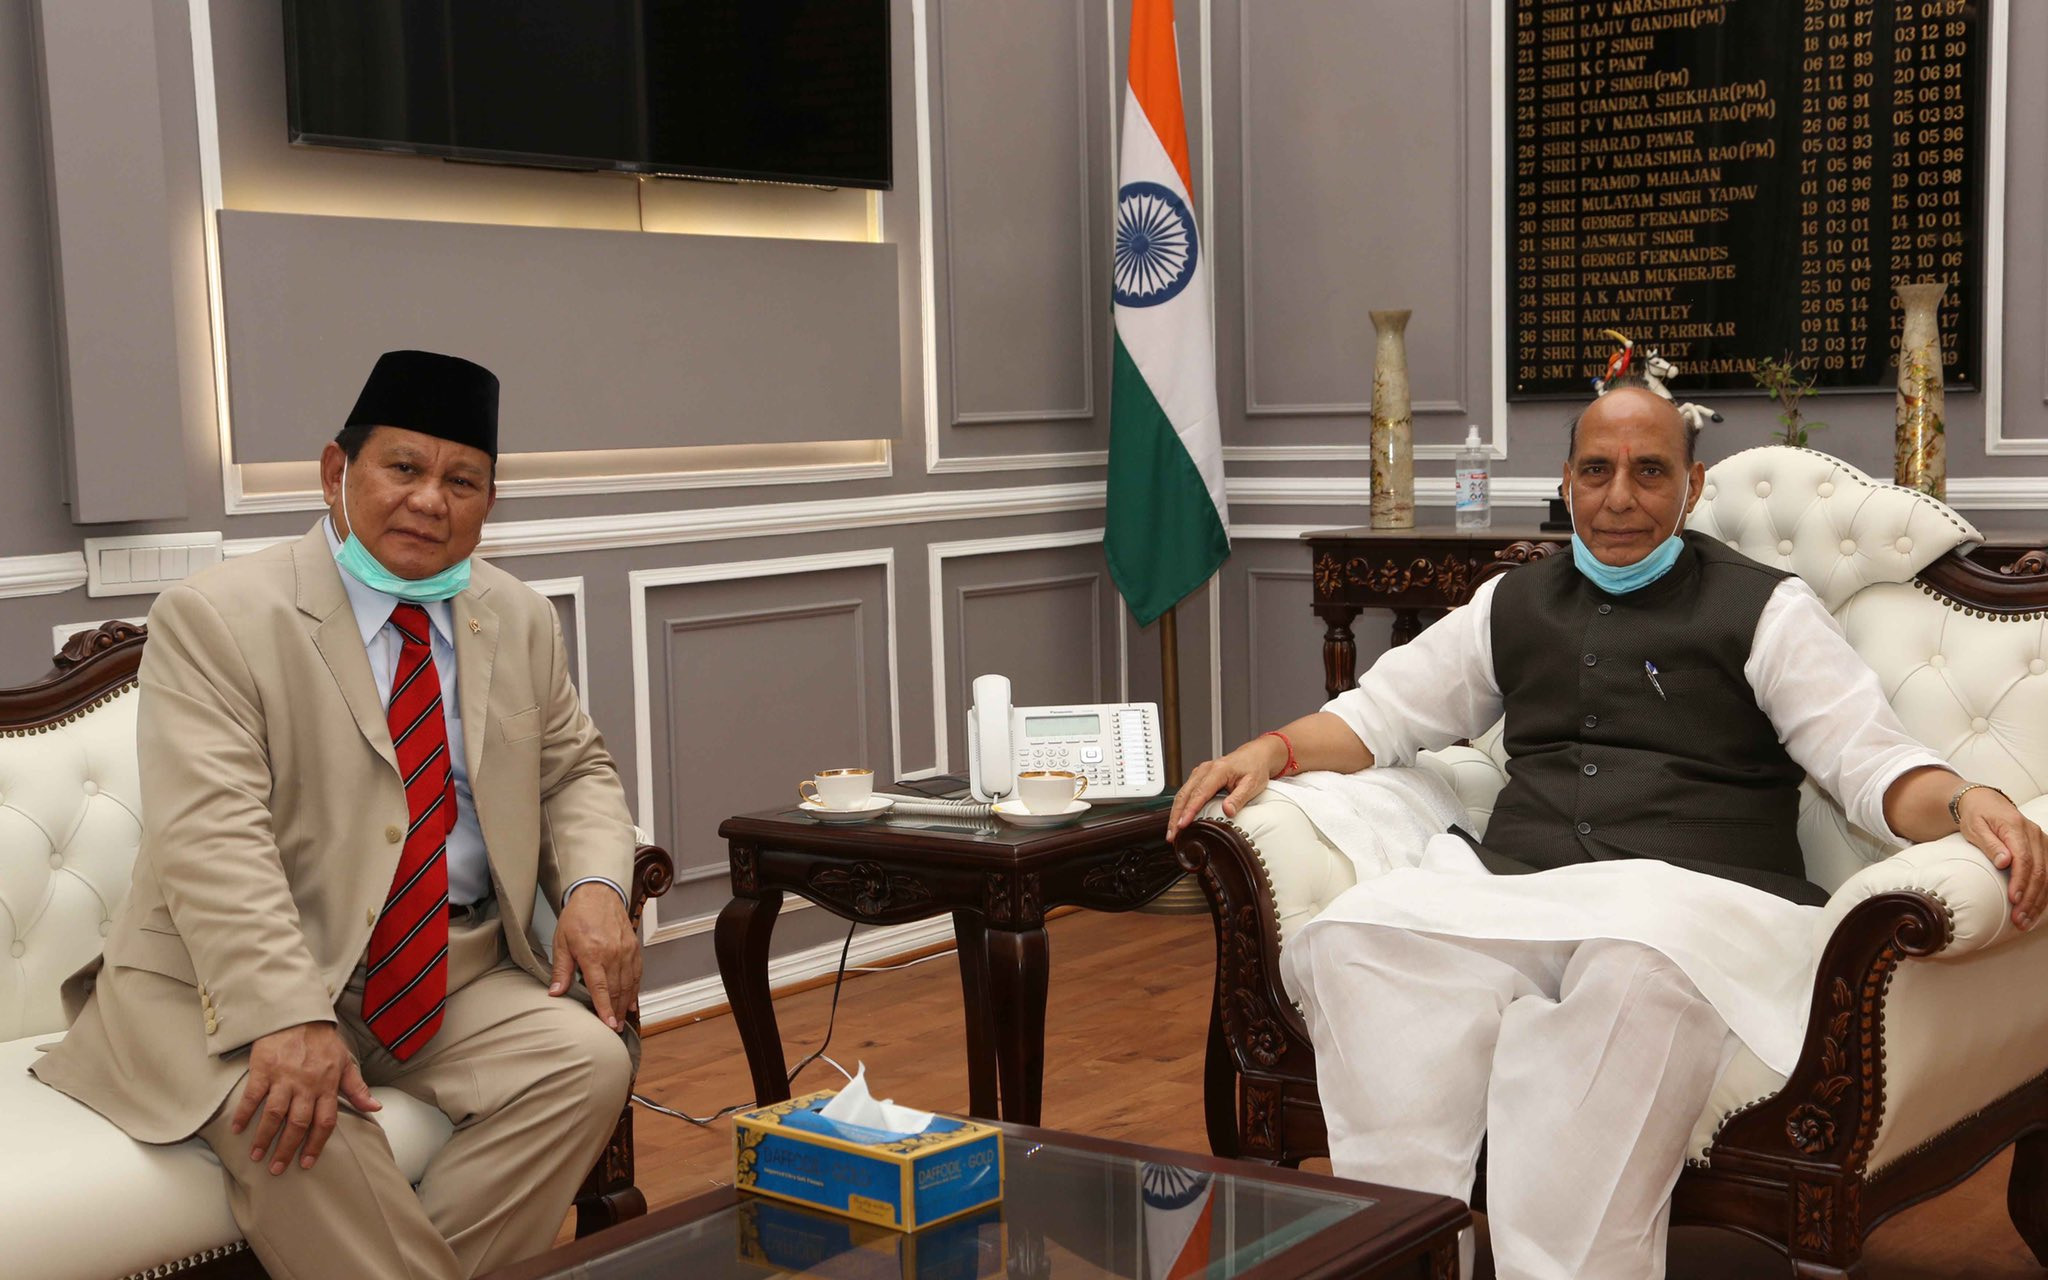 Defence Minister of Republic of Indonesia, General Prabowo Subianto visits India.